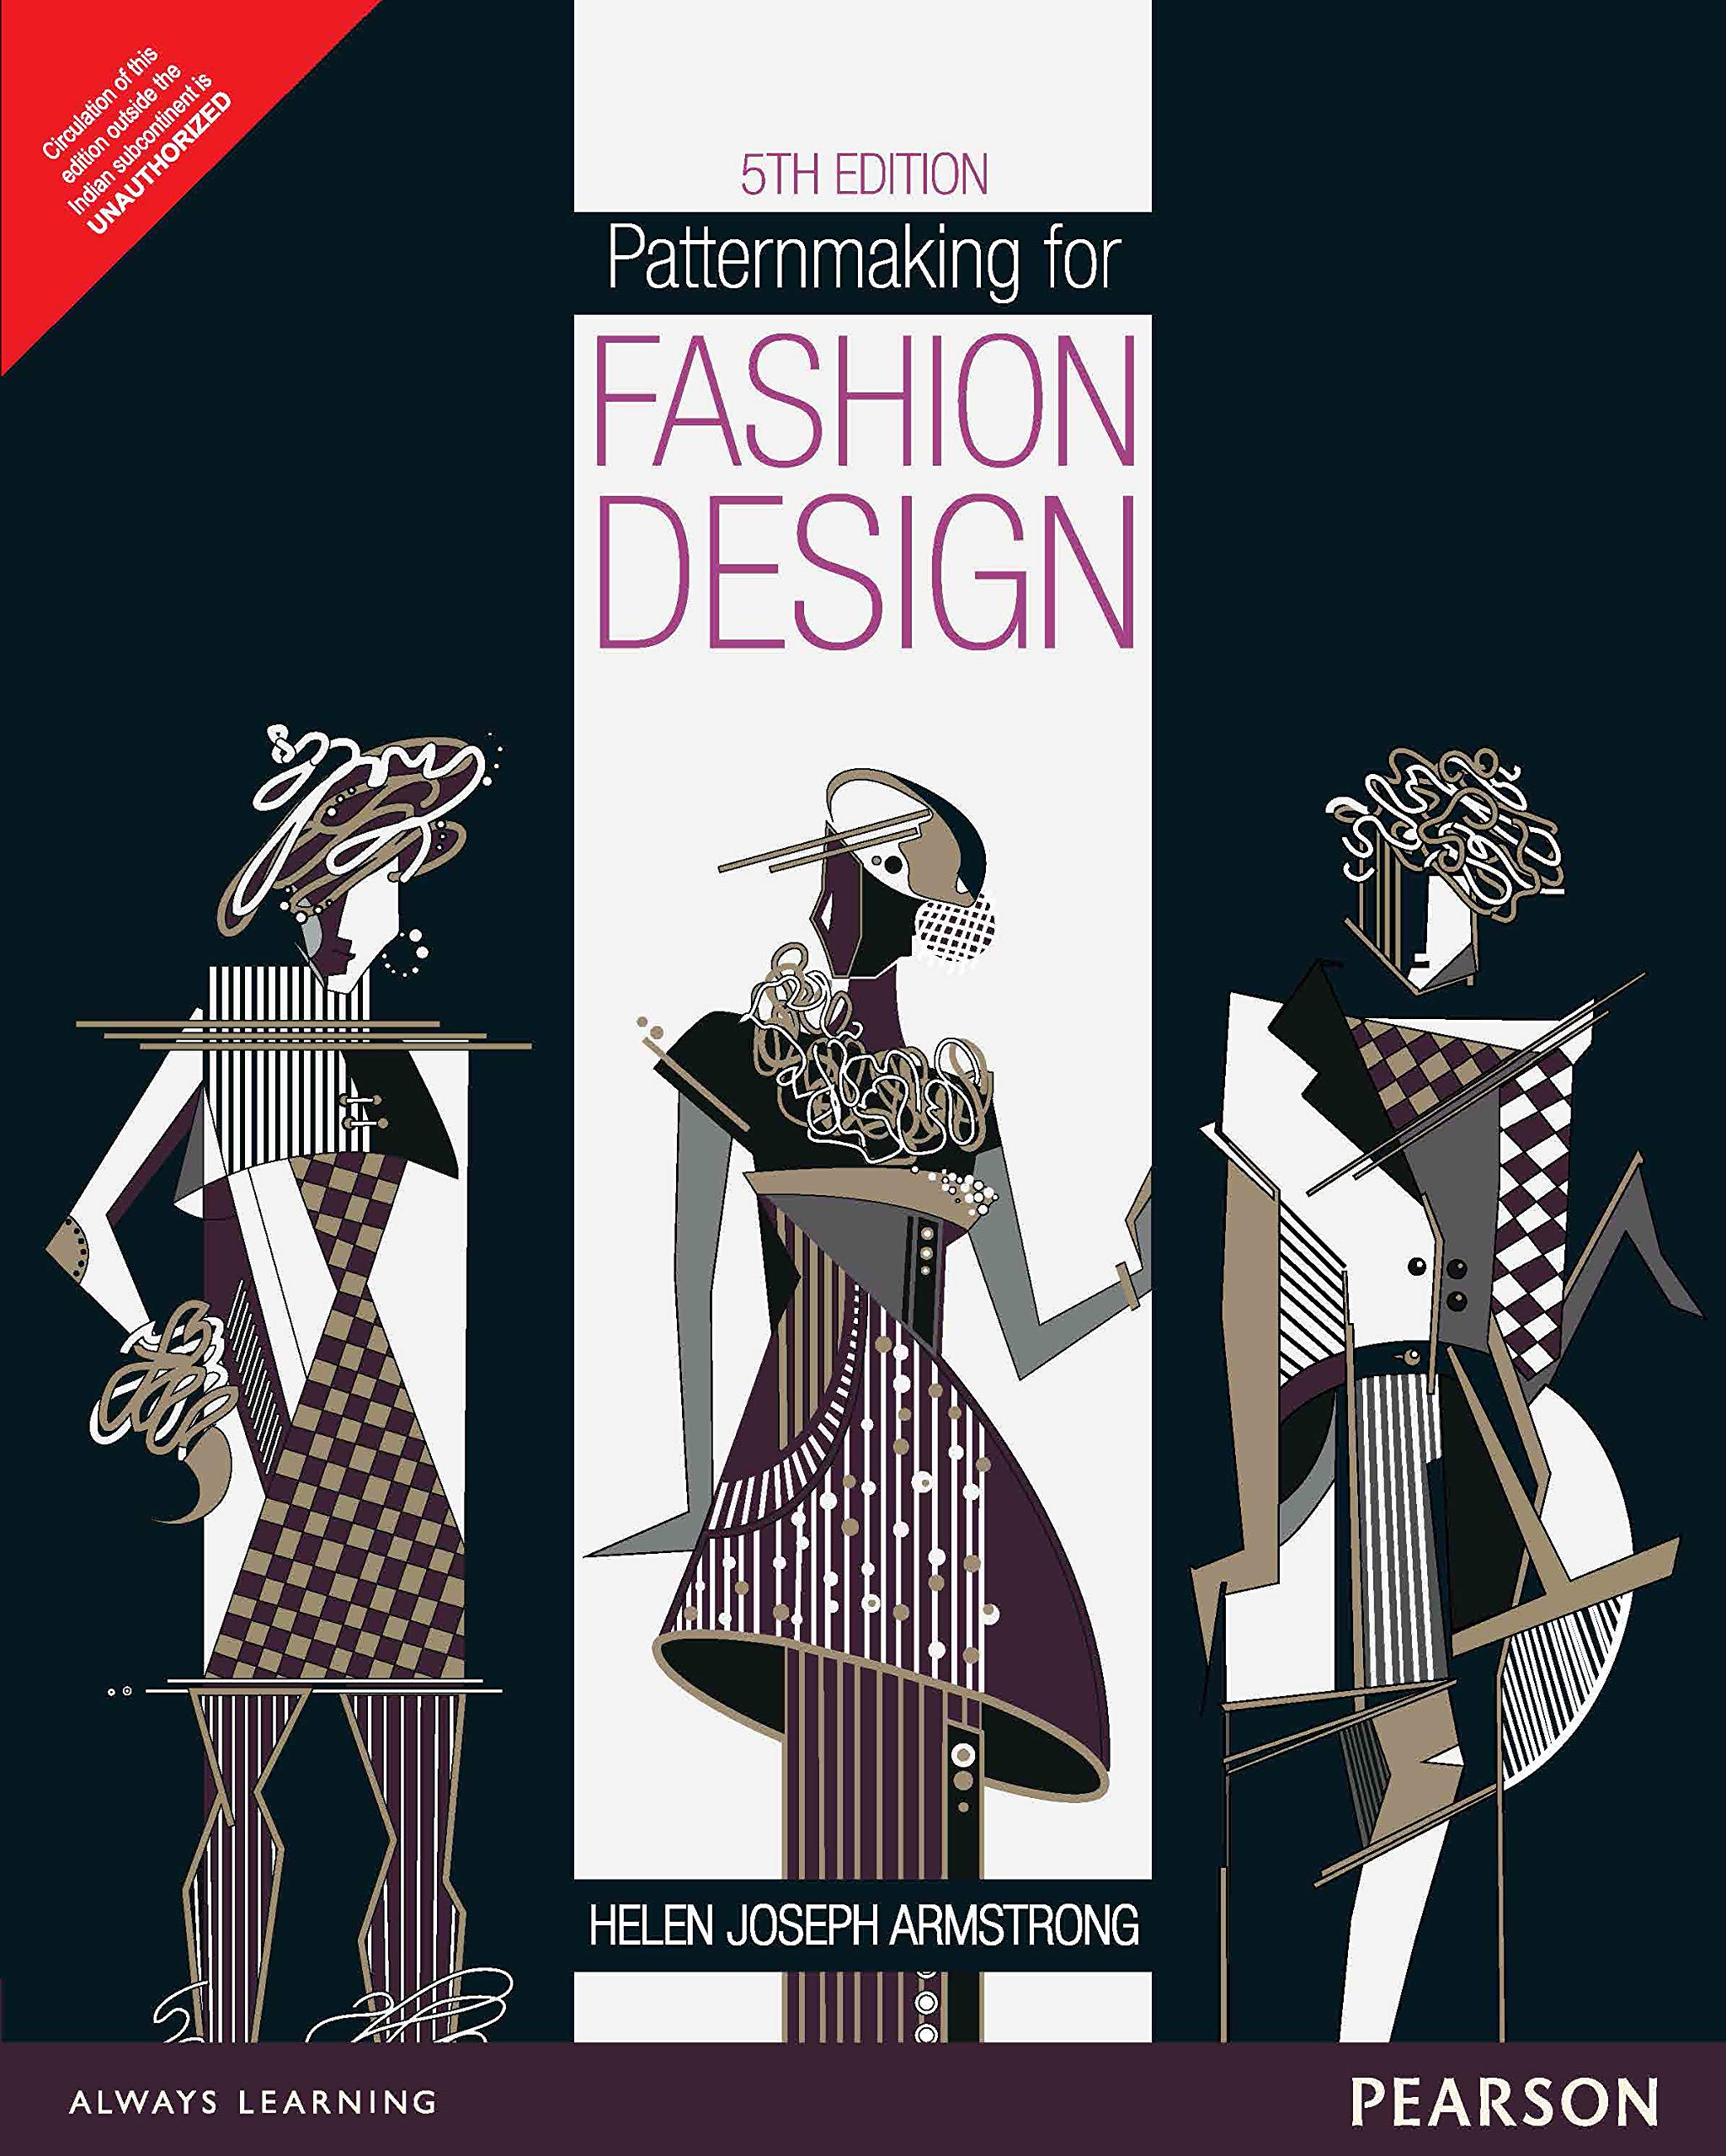 91vcEeNensL - Patternmaking for Fashion Design